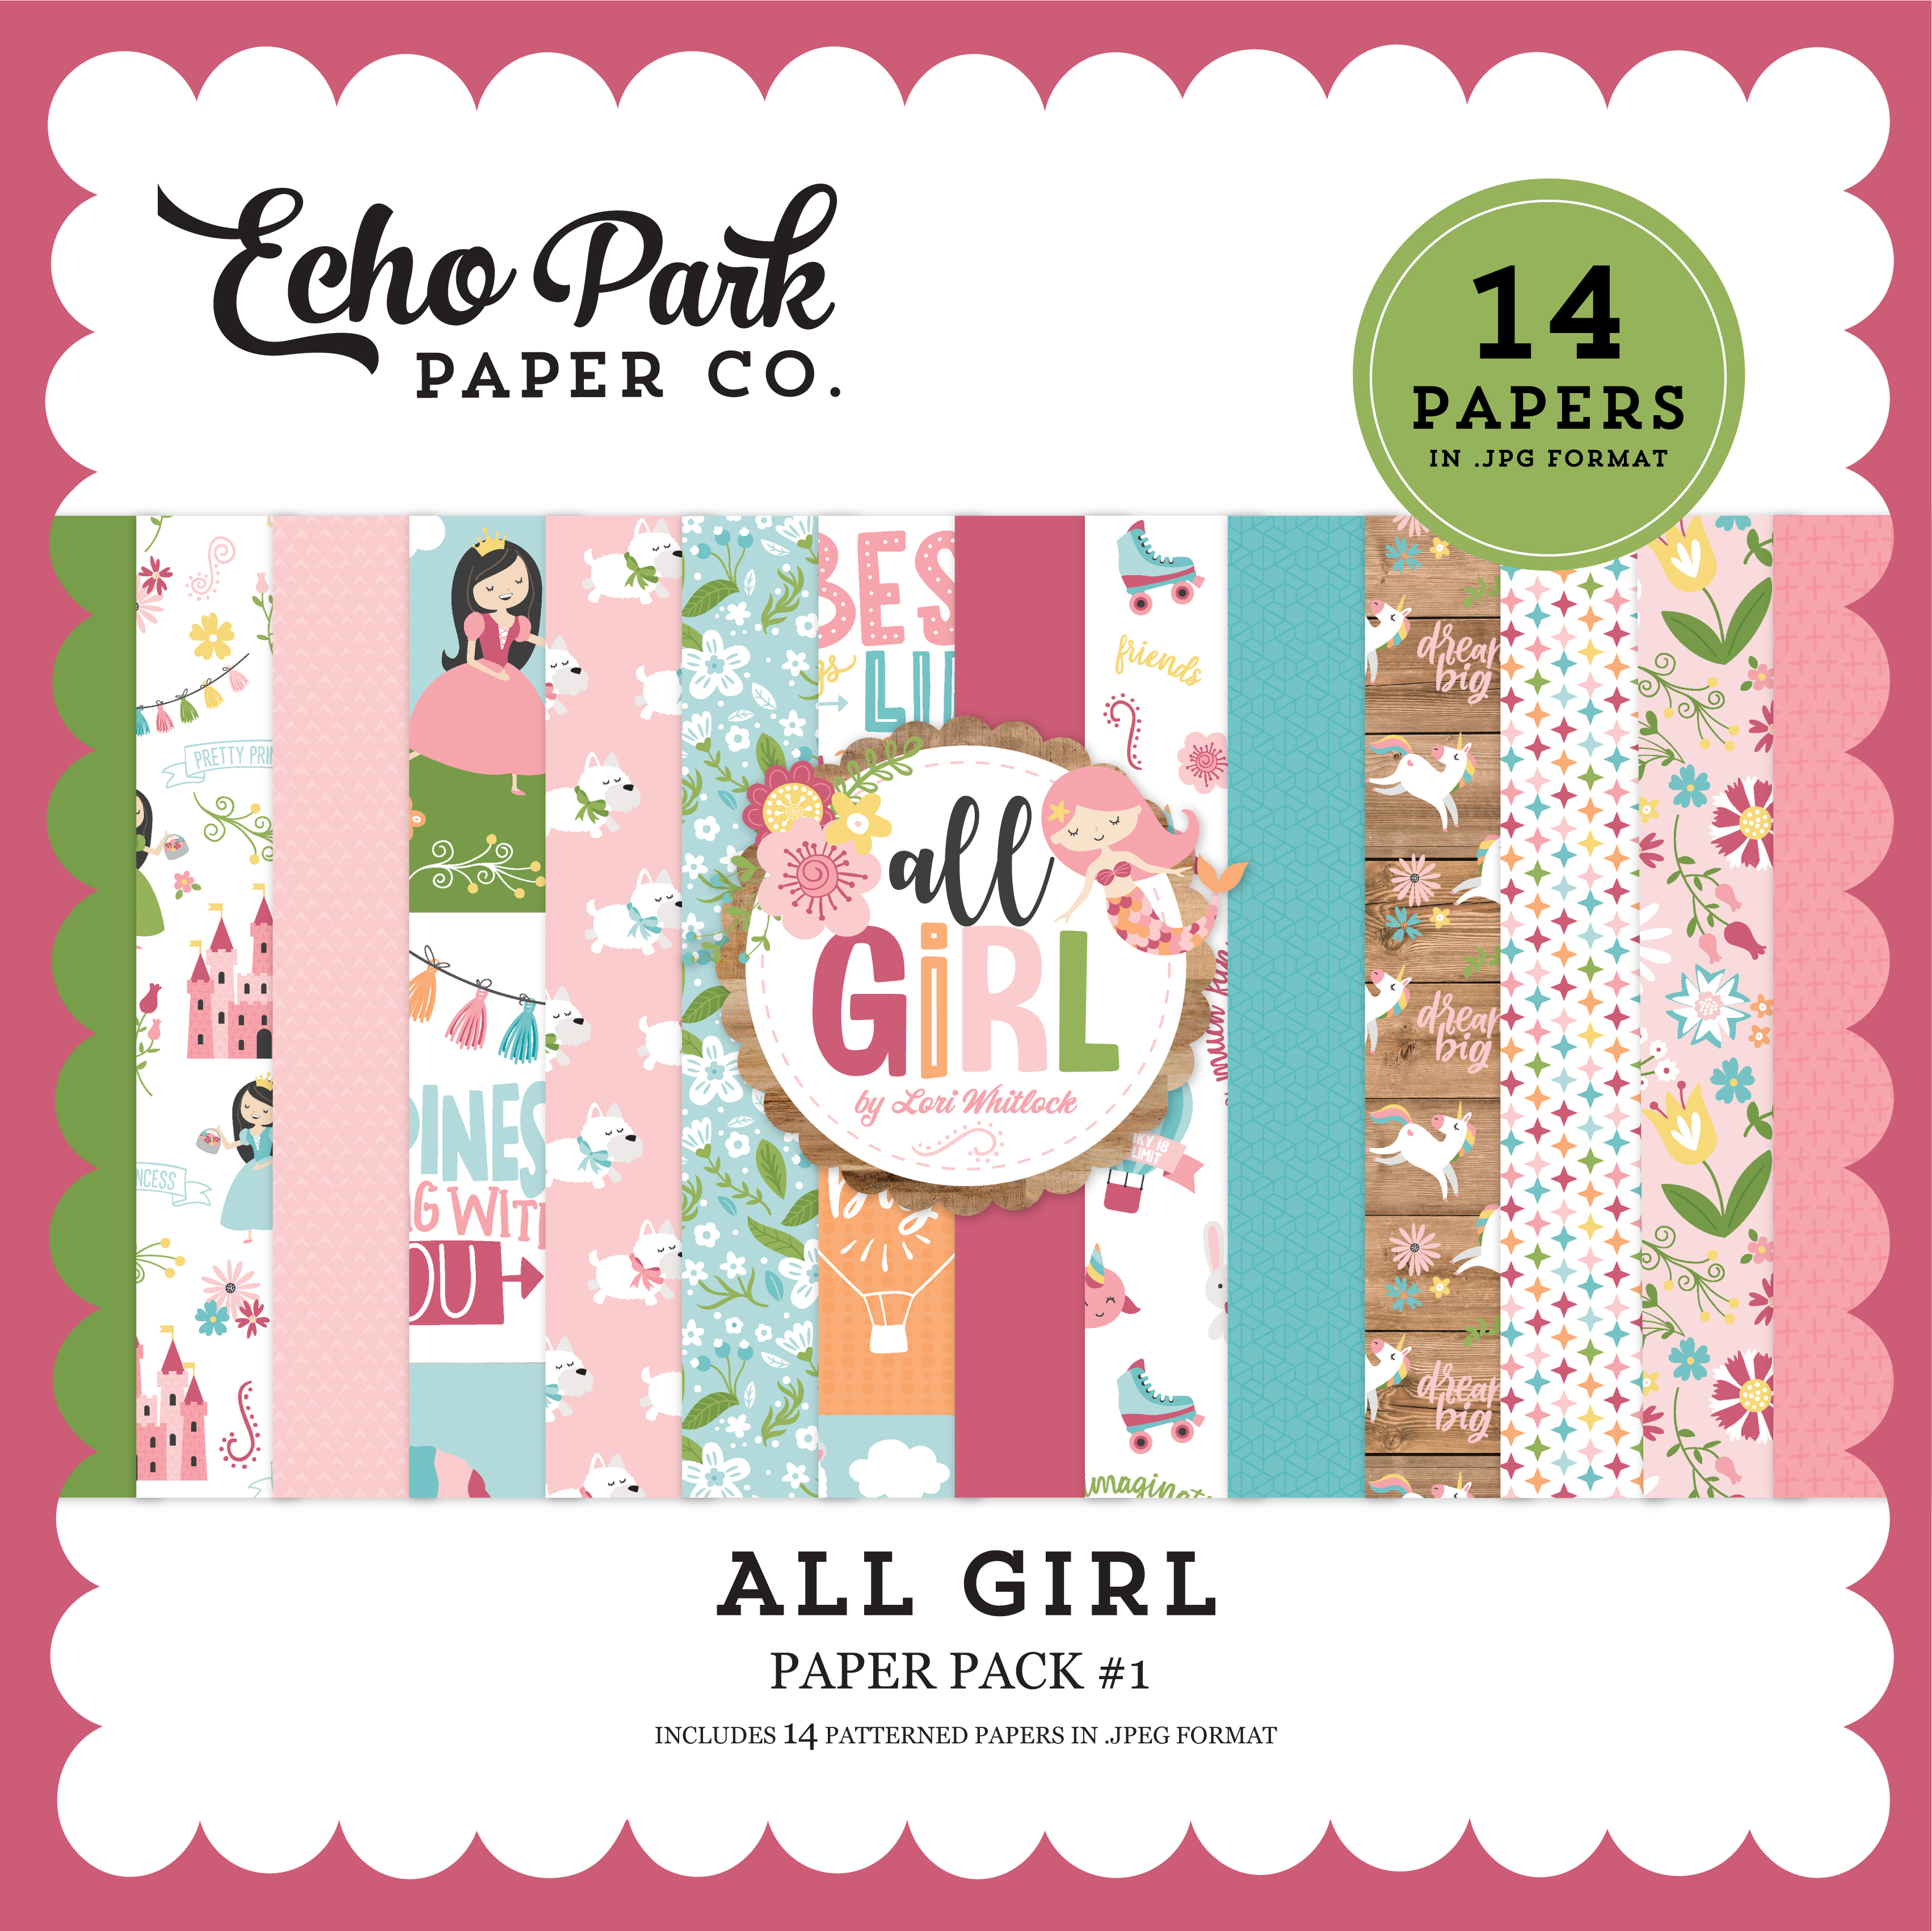 All Girl Paper Pack #1